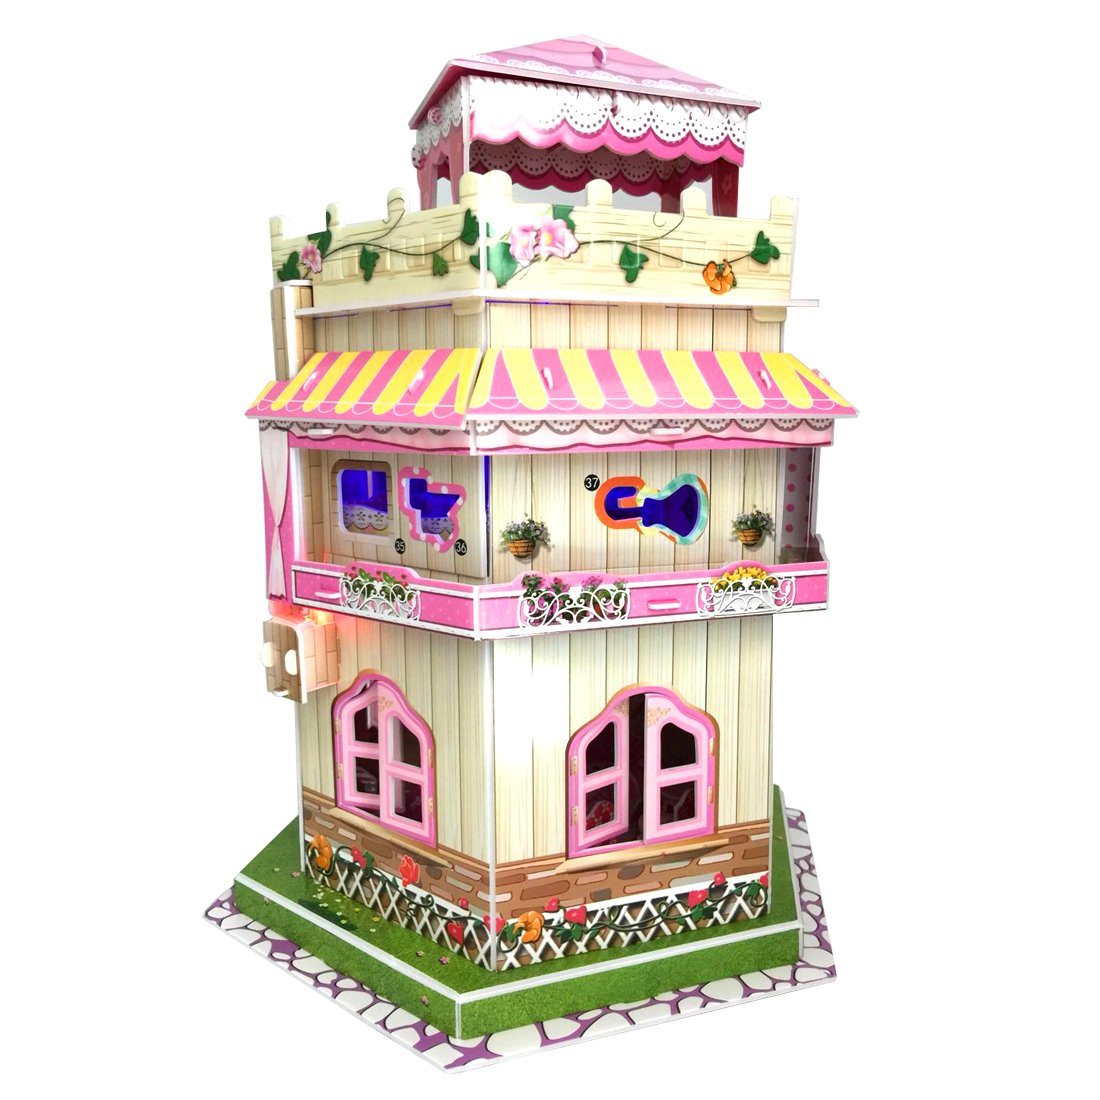 Sourcingbay 3D Puzzle Romantic Dollhouse With Led Ambient Light - Gifts for Girls 8 Years Old and Under Educational Toys Craft for Kids (101 Pieces) China OEM